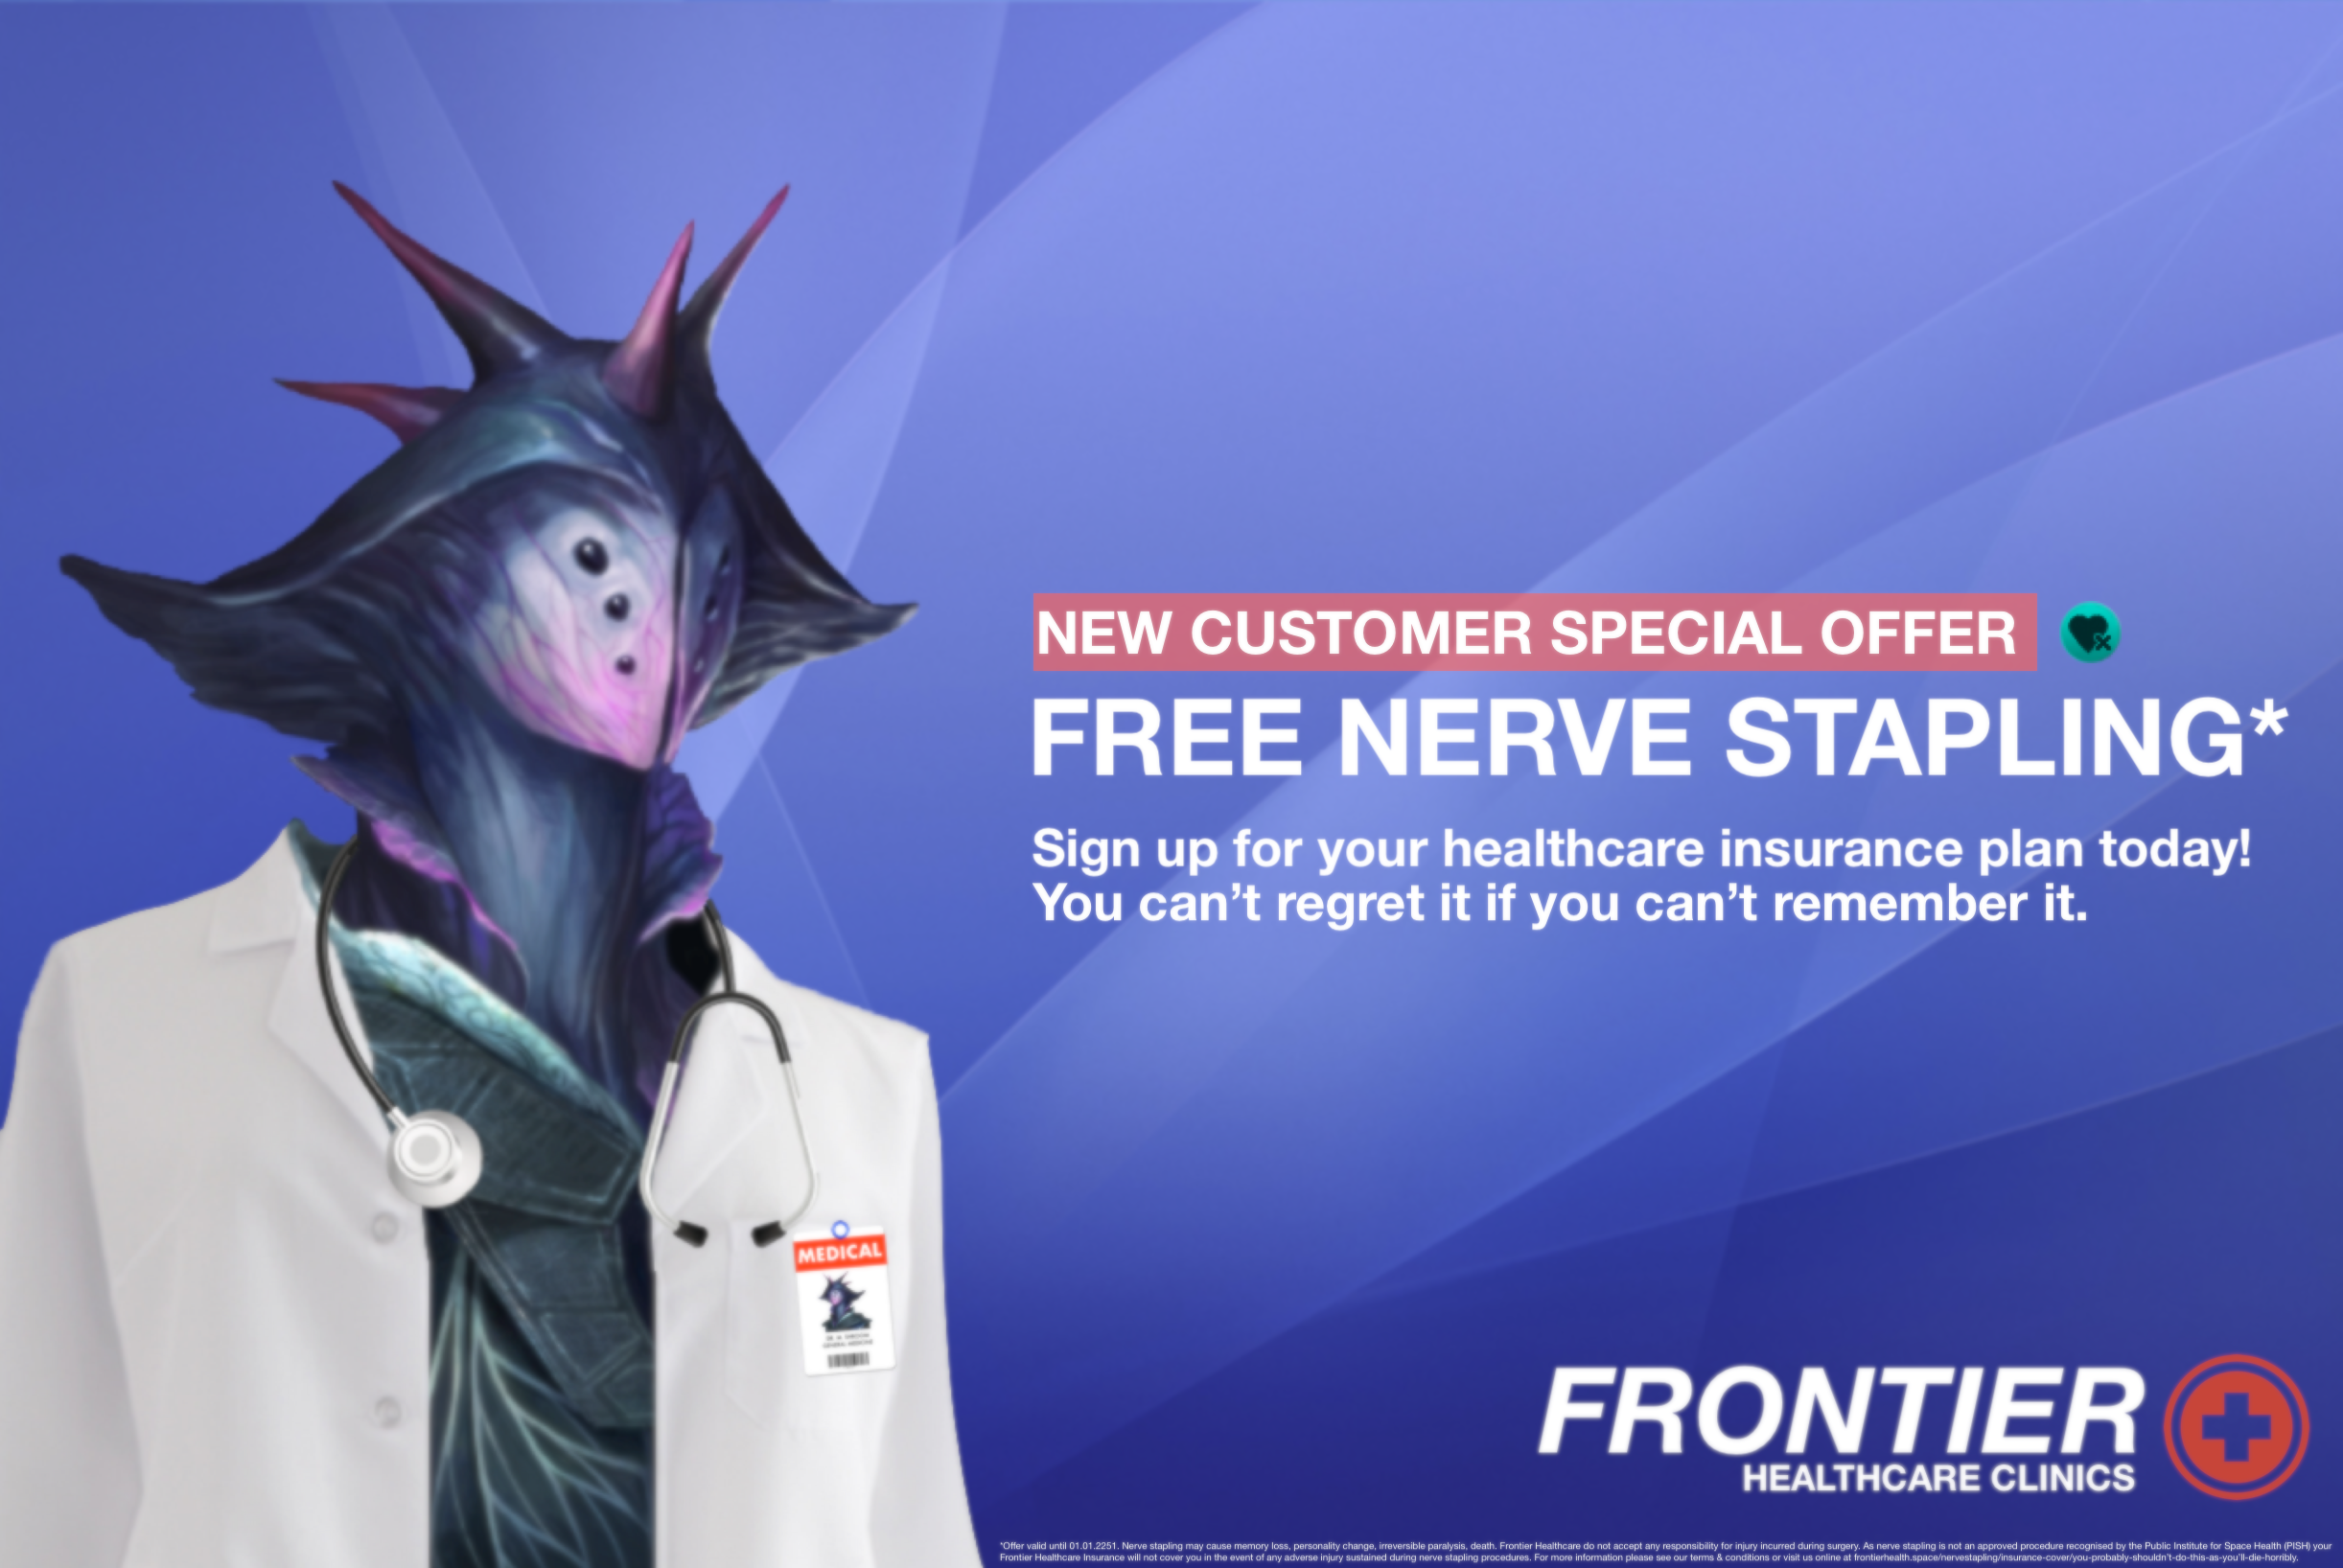 I - Commercial, Frontier.png